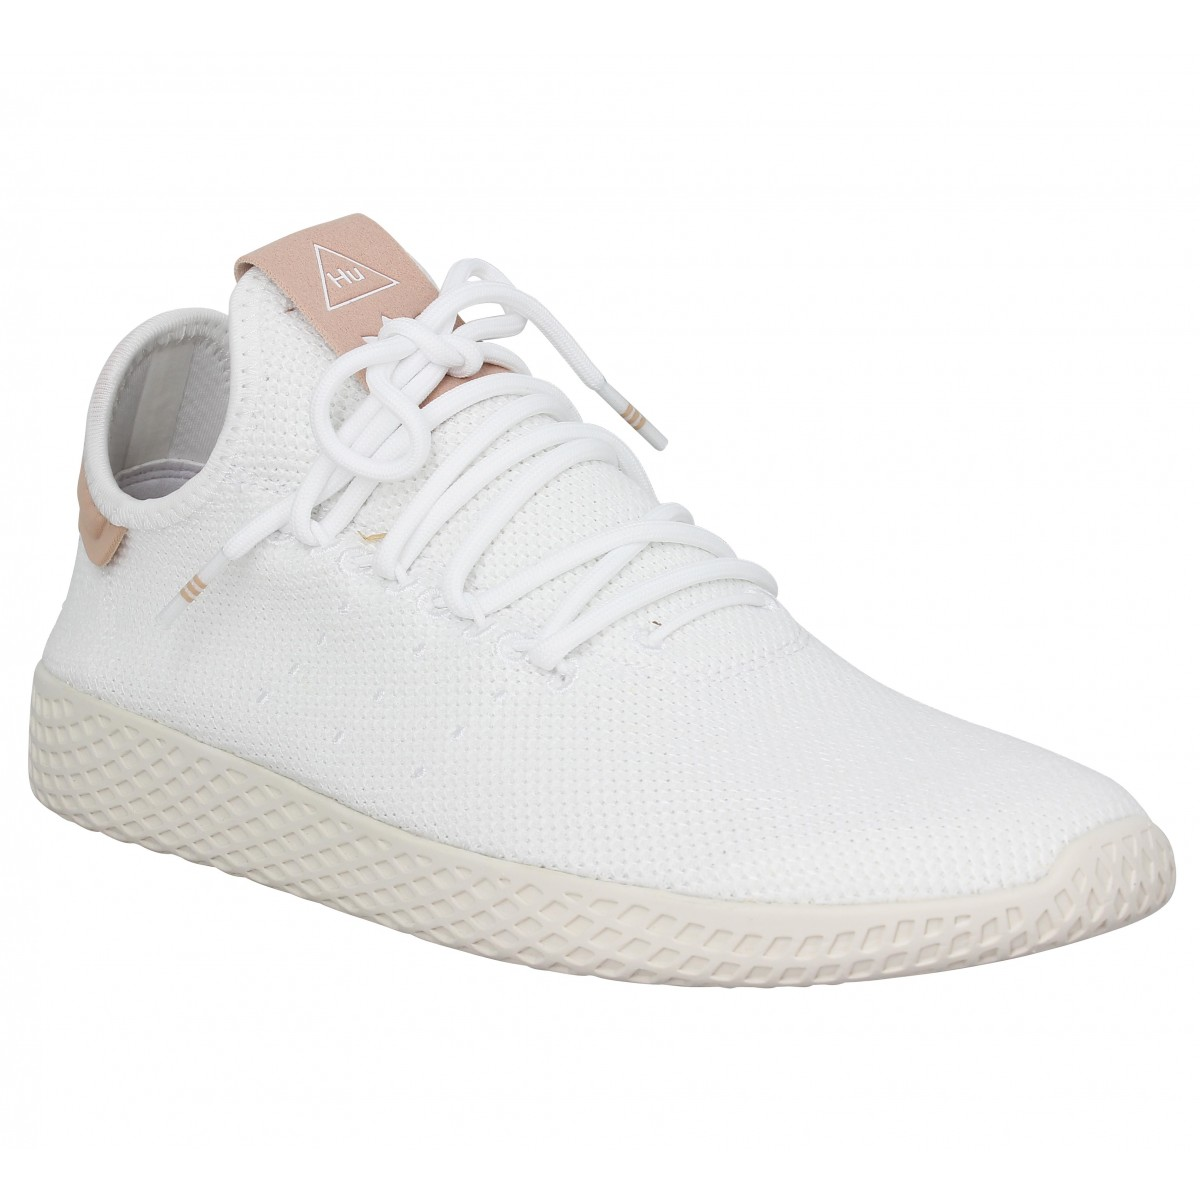 Baskets ADIDAS X PHARRELL WILLIAMS PW Tennis mesh Blanc